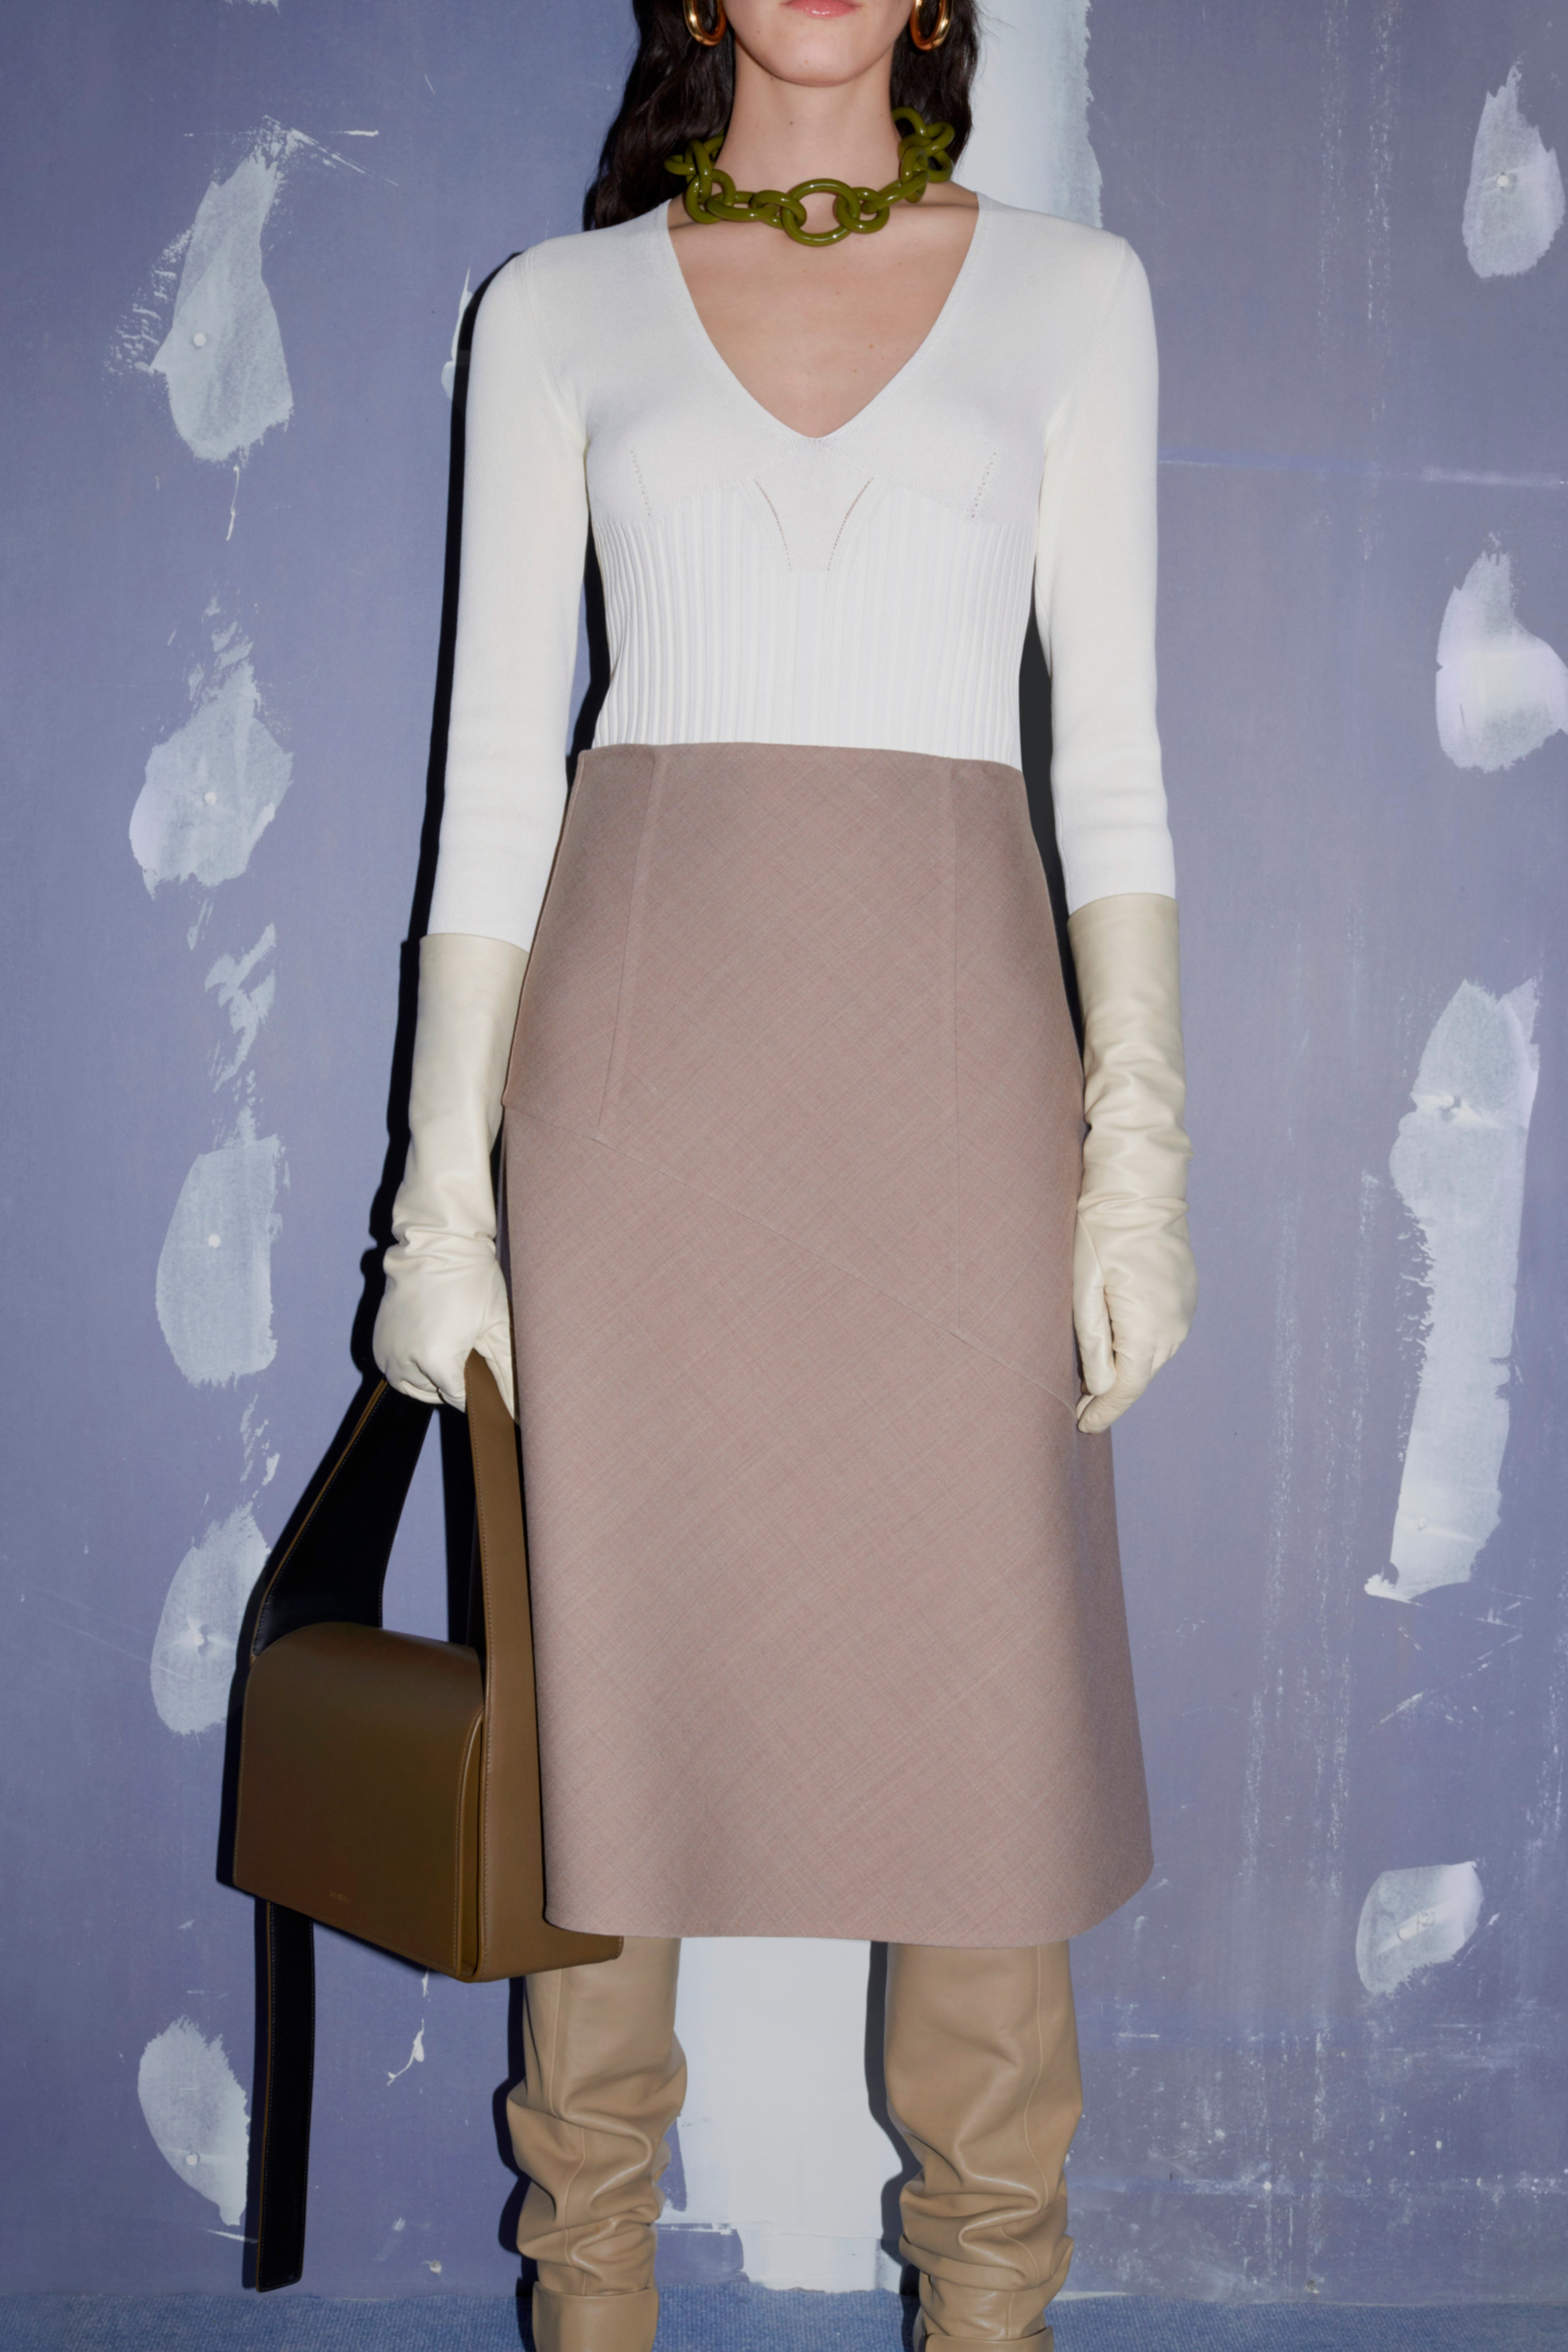 For walks in the fresh air: A seasonal collection of Jil Sander arrived at Asthik (photo 5)